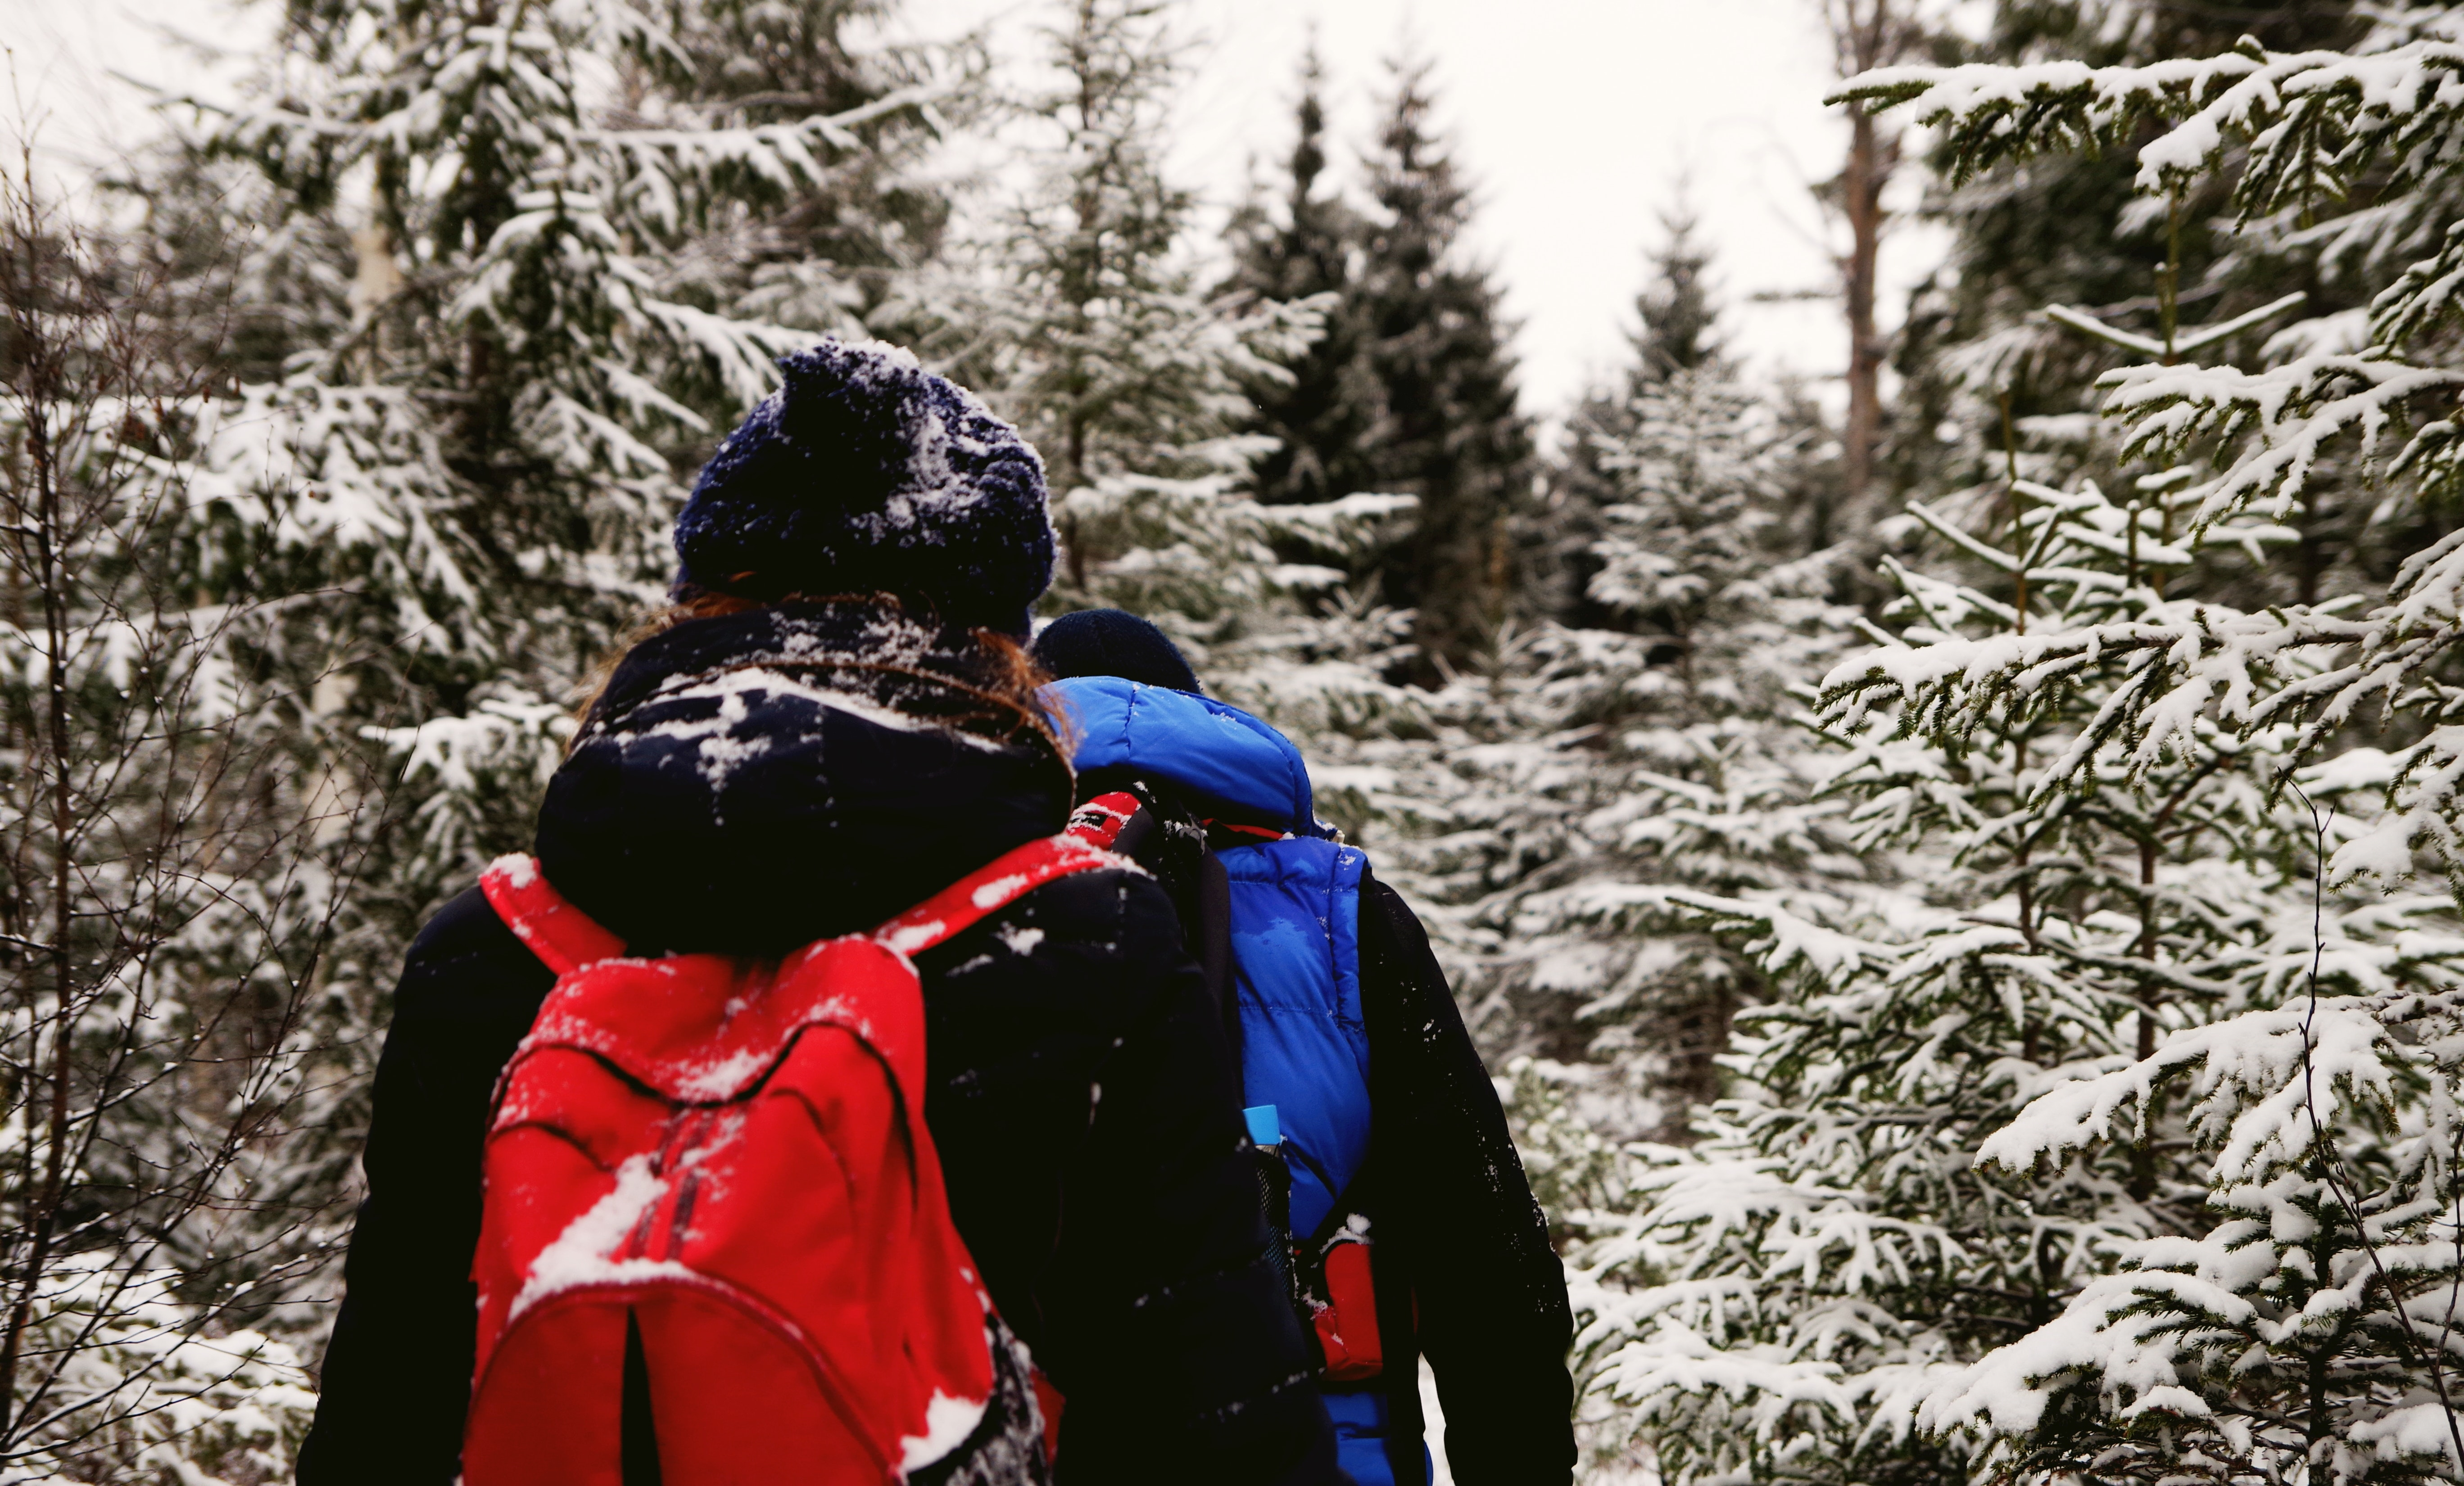 Two people wearing jacket and red backpack during winter season photo